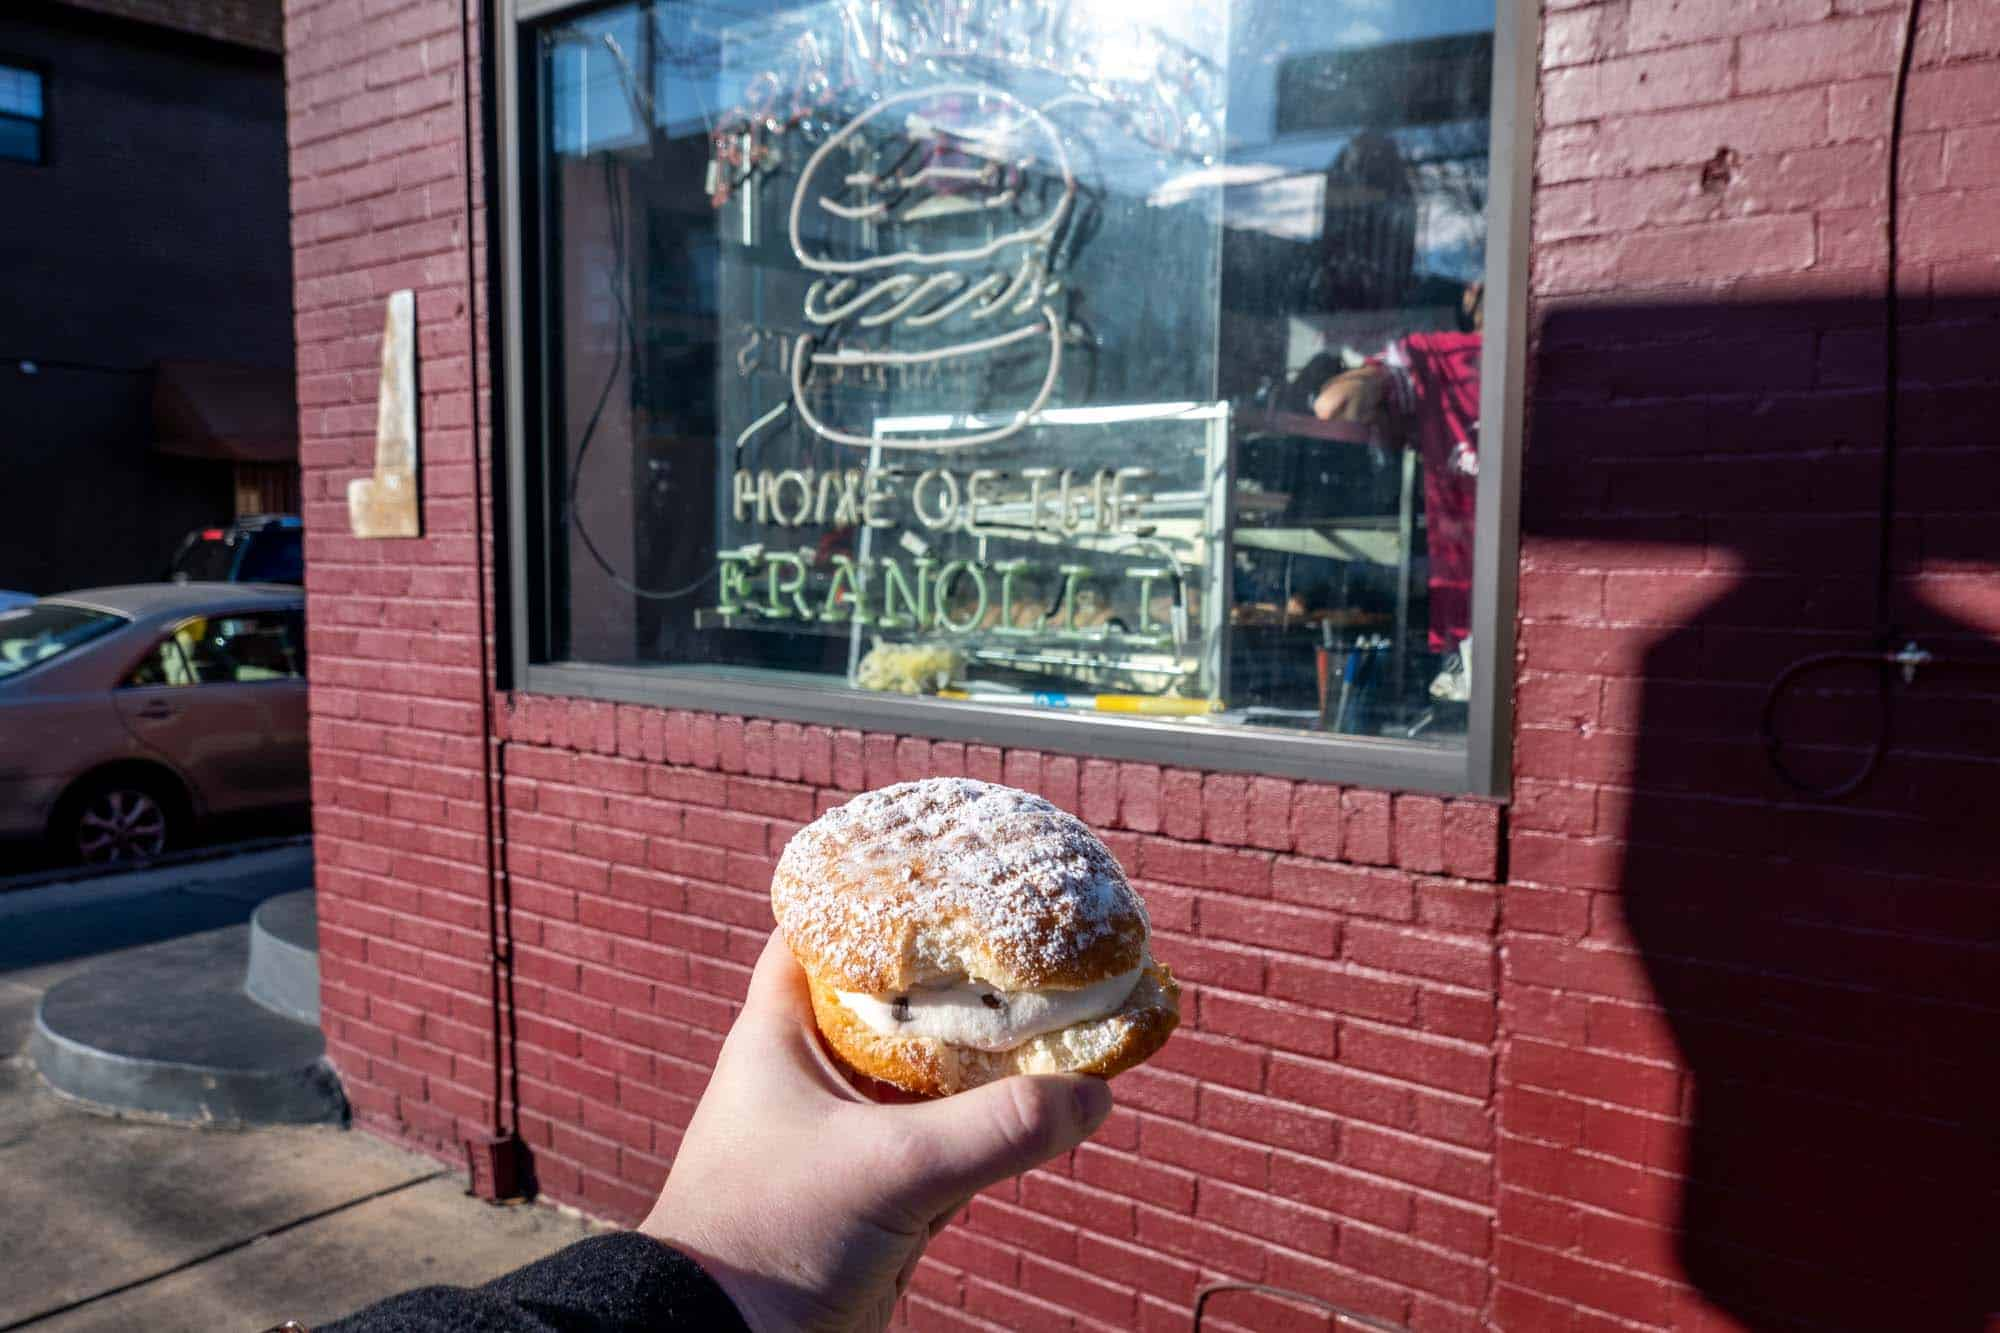 """Hand holding a pastry in front of a sign for """"Frangelli's: Home of the Franolli"""""""